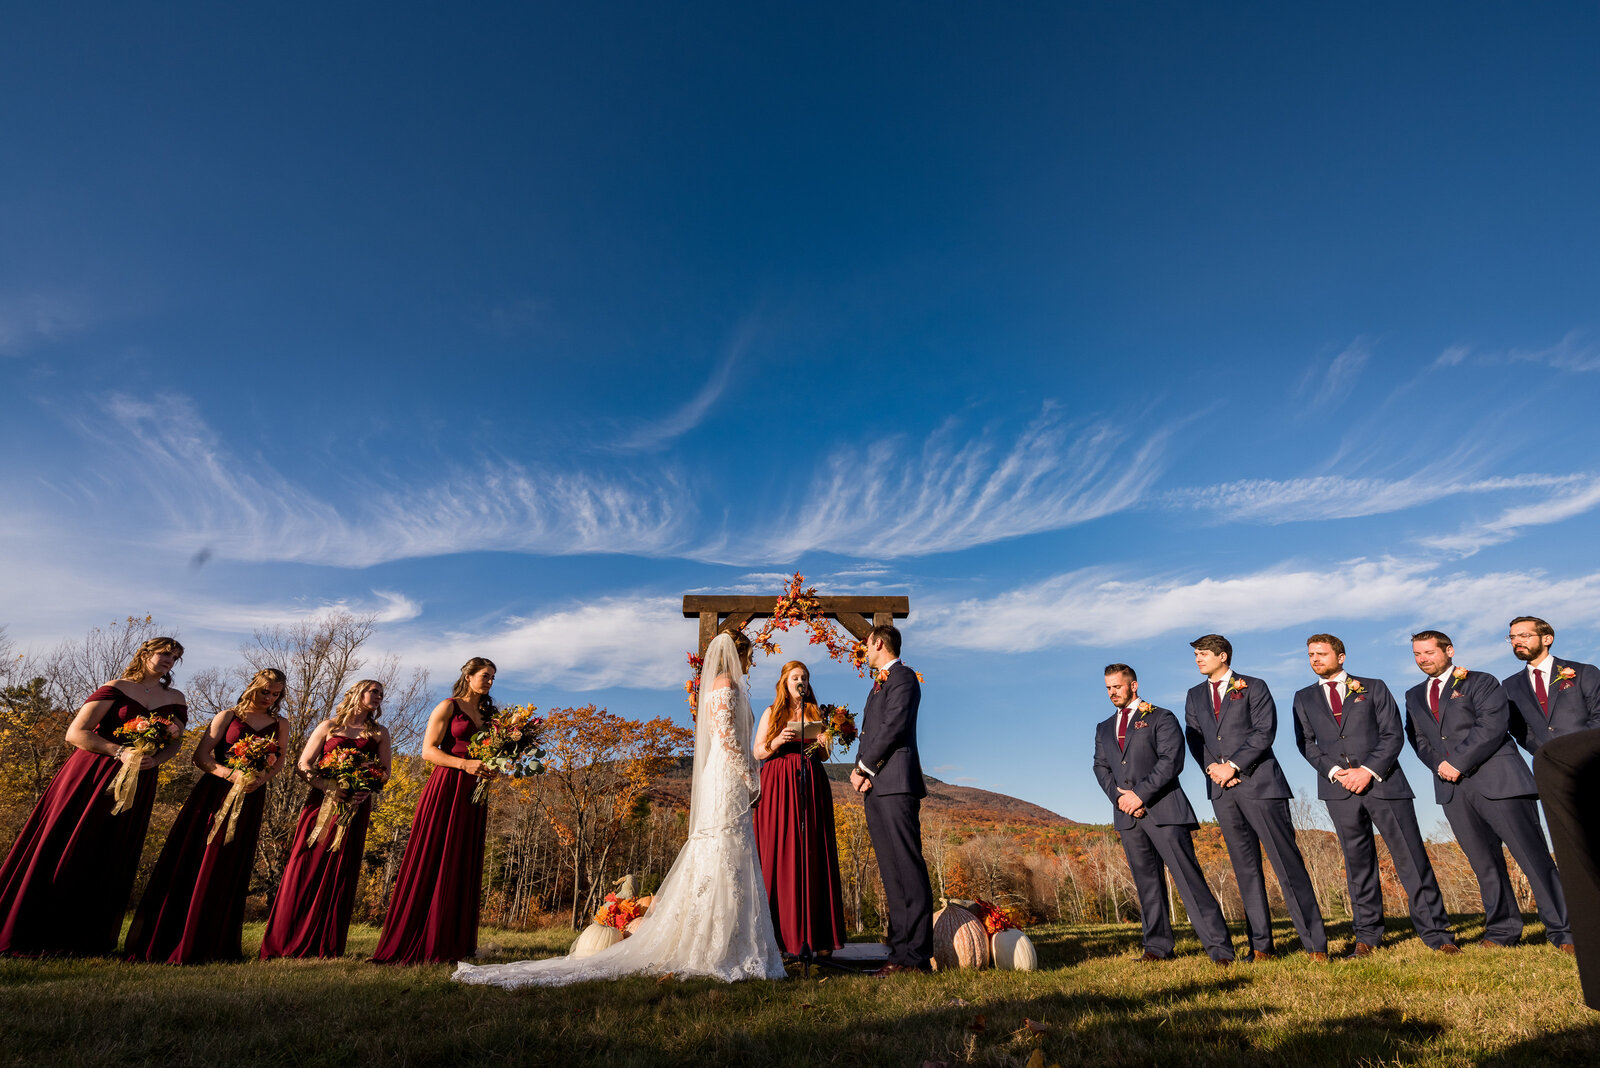 NH Barn wedding with mountain views durng ceremony